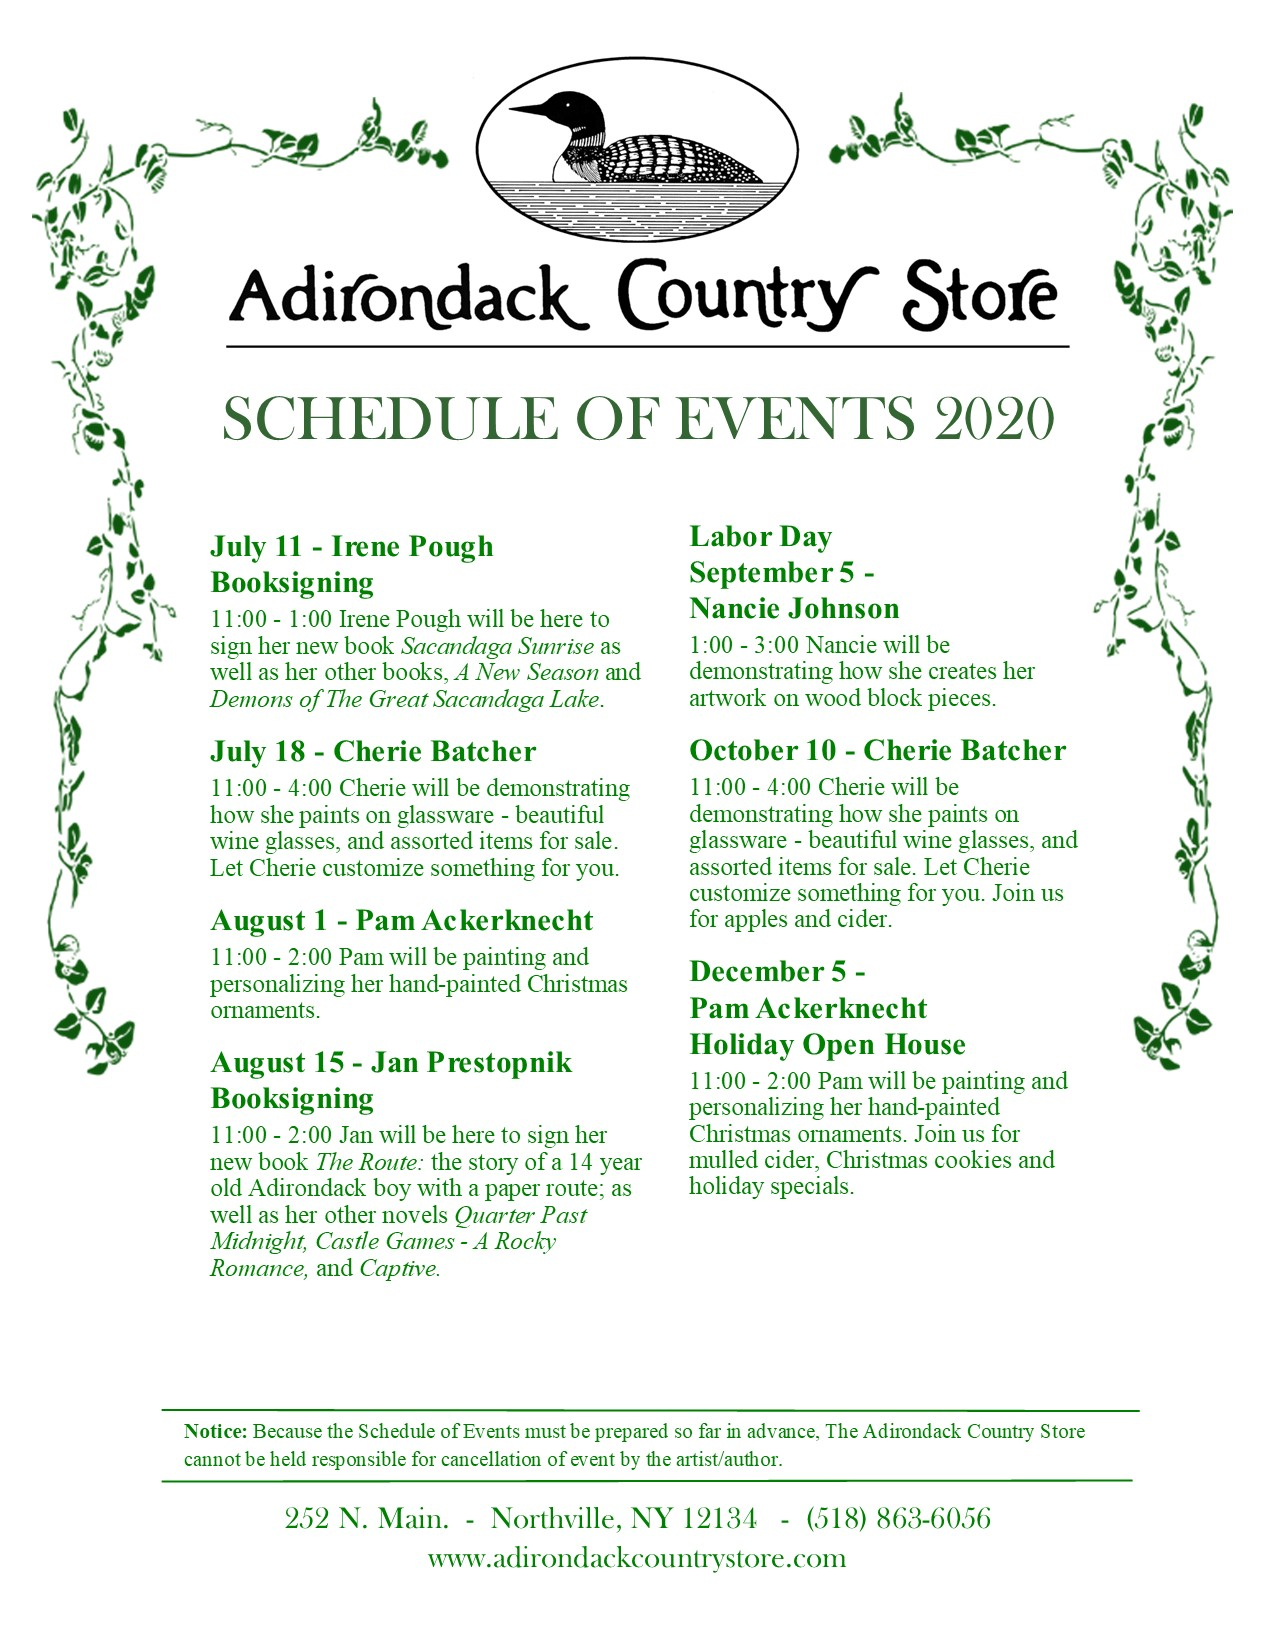 adirondack-country-store-schedule-of-events-2020.jpg